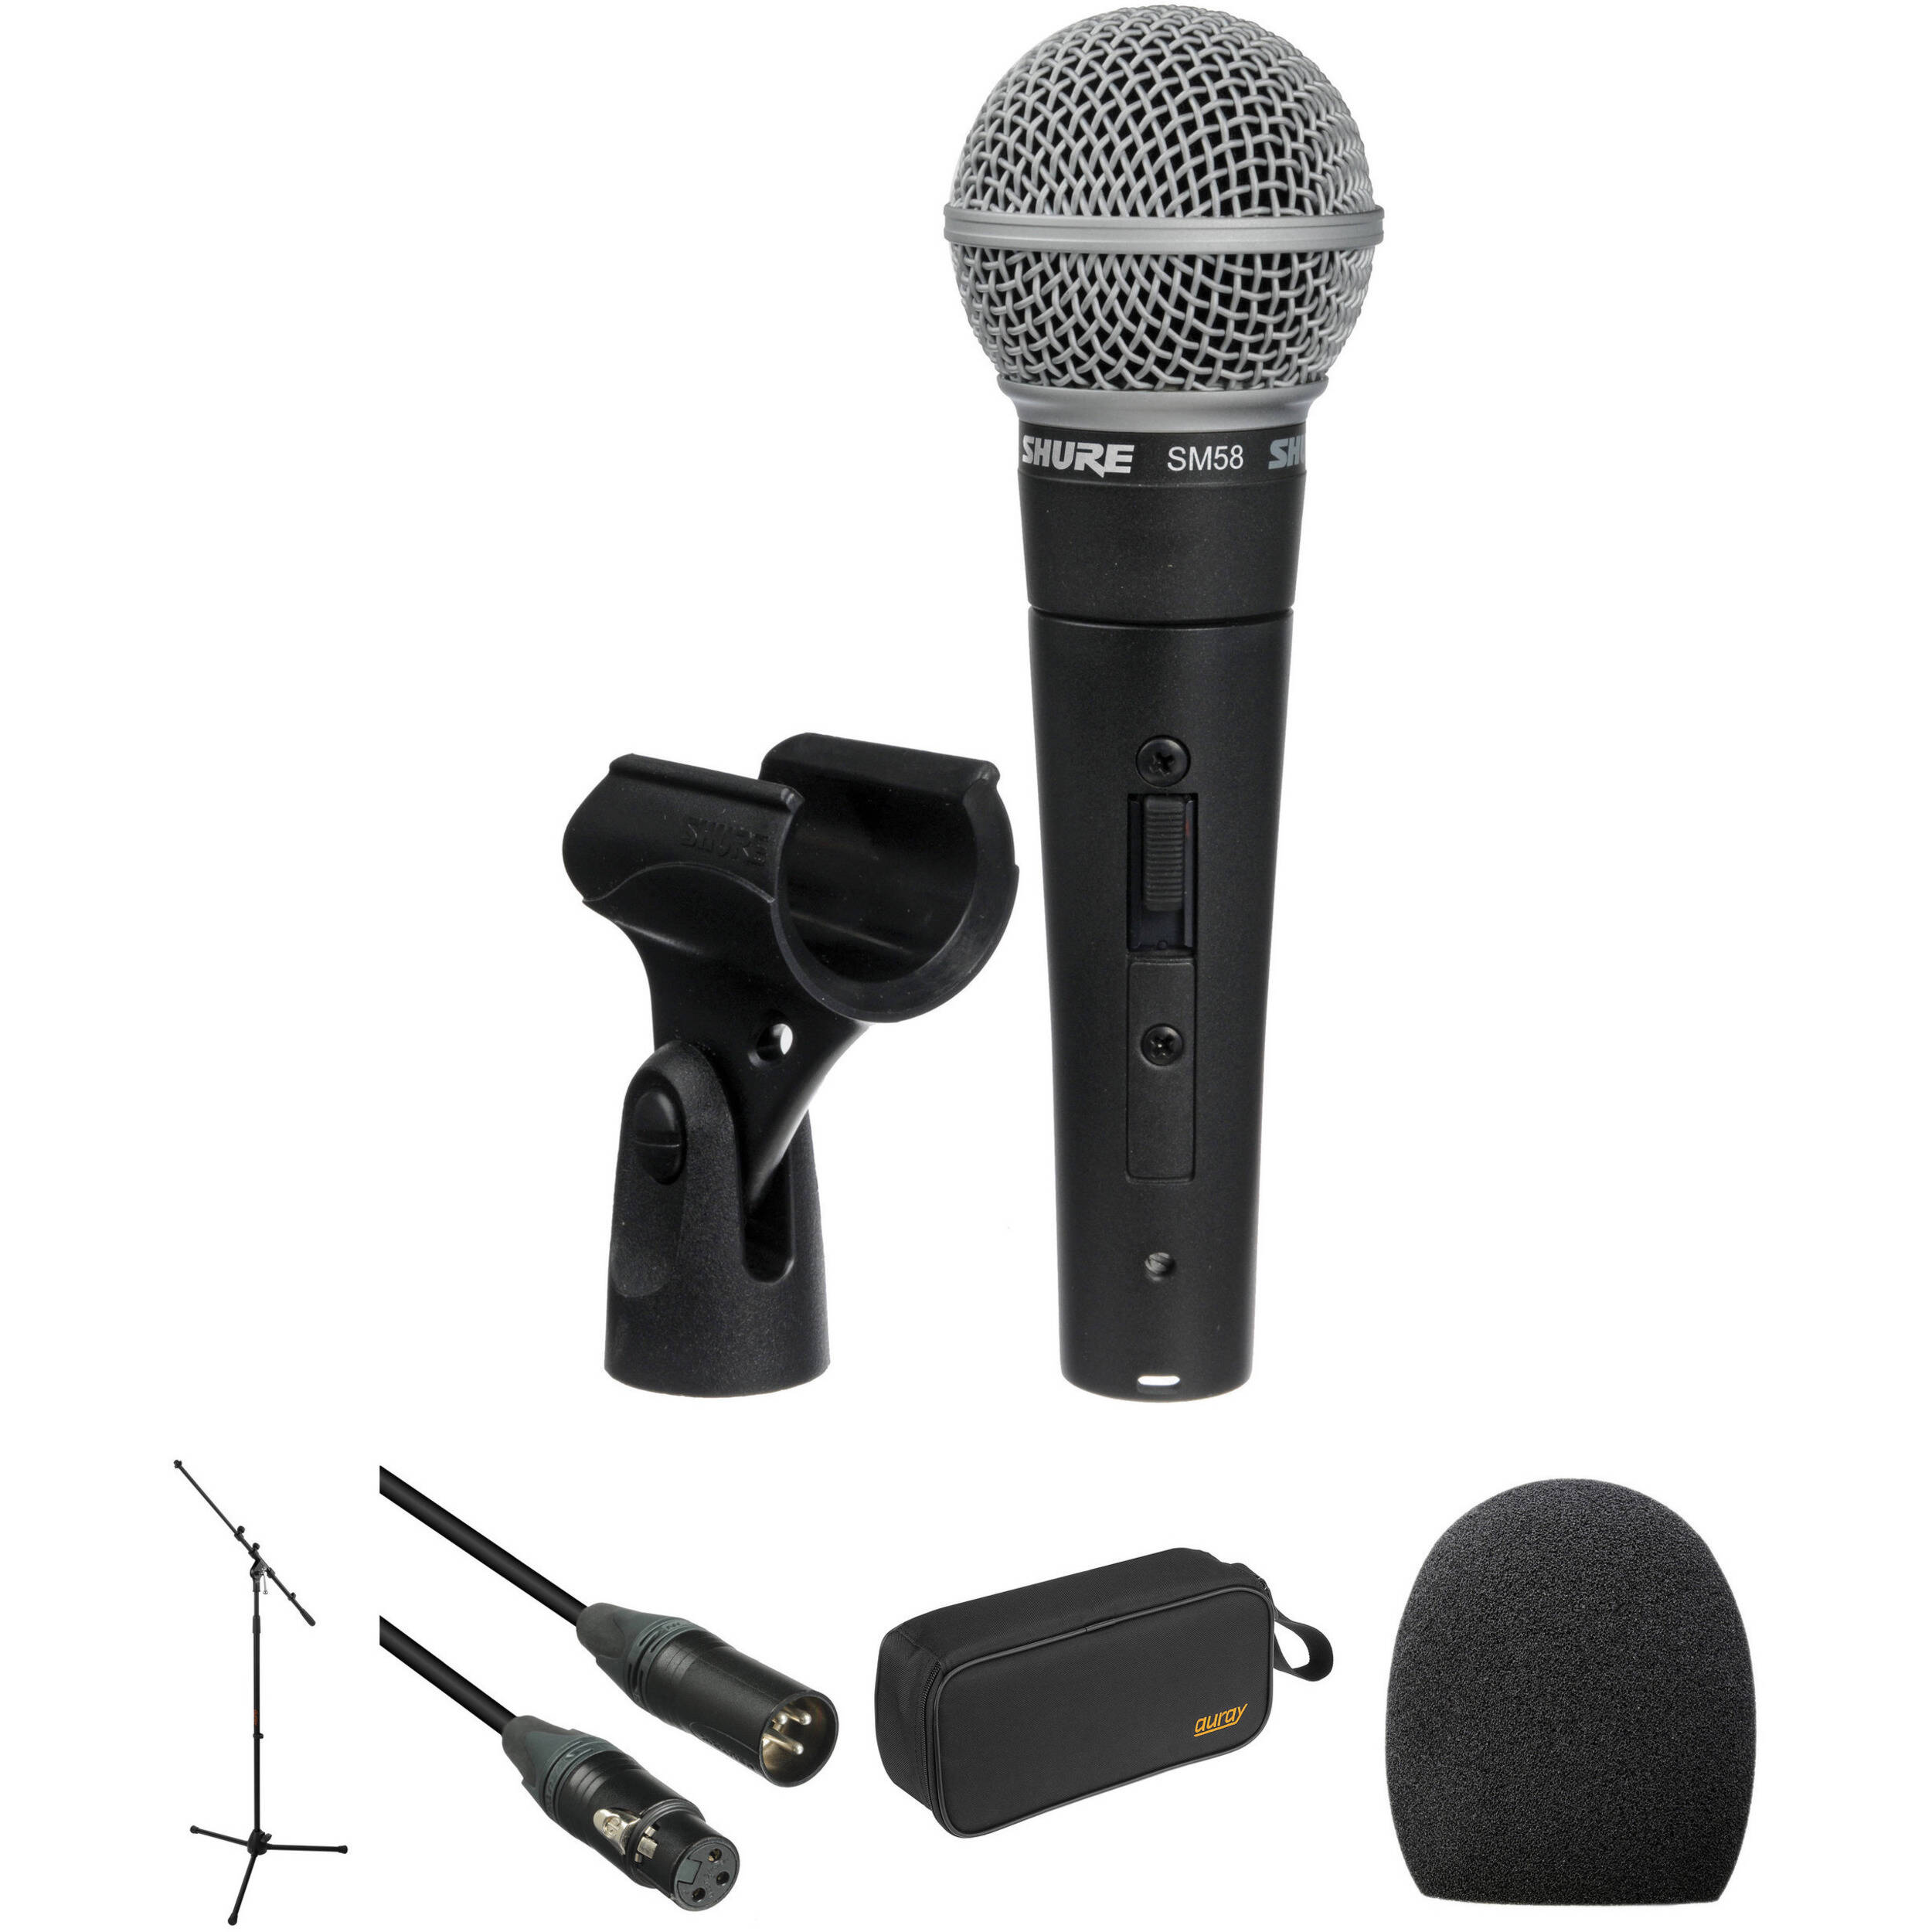 Shure Sm58s Cardioid Microphone Kit Includes Switch Boom Bh Midrange Coustic Ca Sp 300 Mid Stand Cable Case And